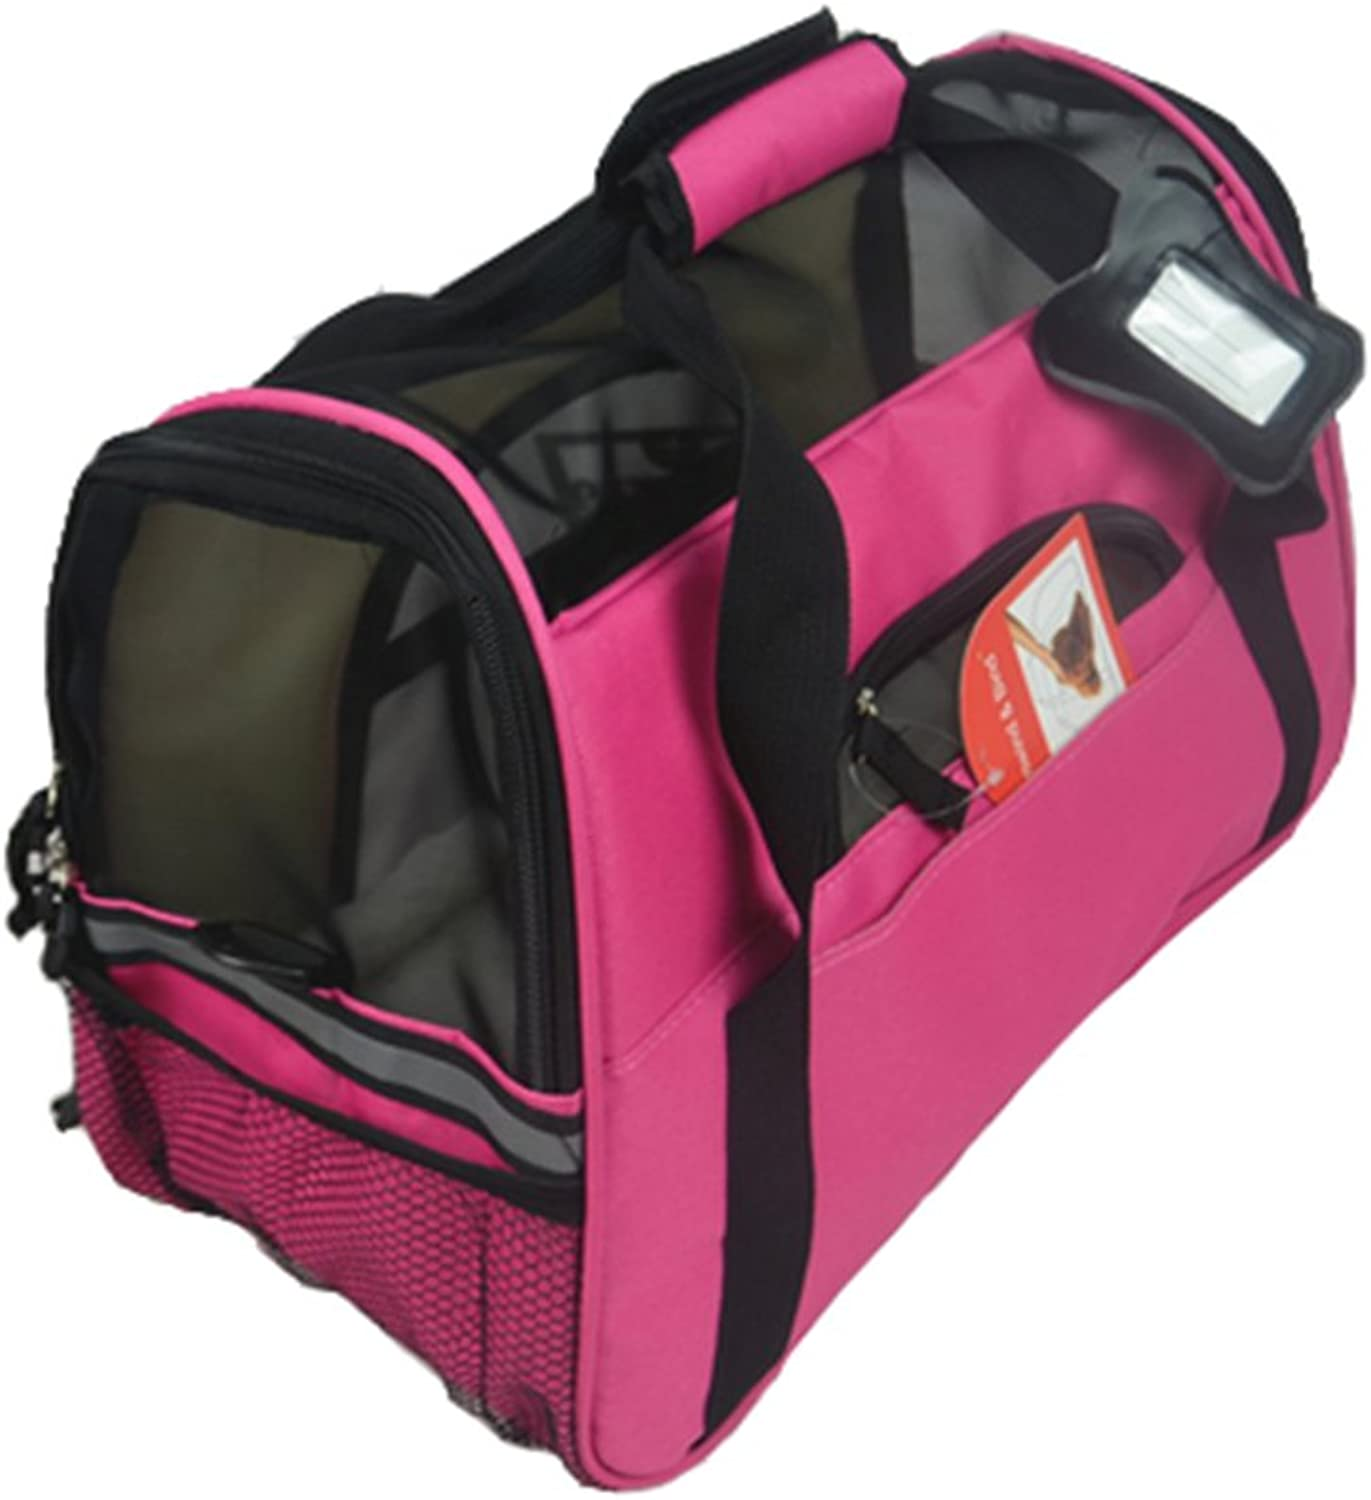 Pet Carrier Soft Sided Travel Bag for Small Dogs & Cats Airline Approved, Pink  4